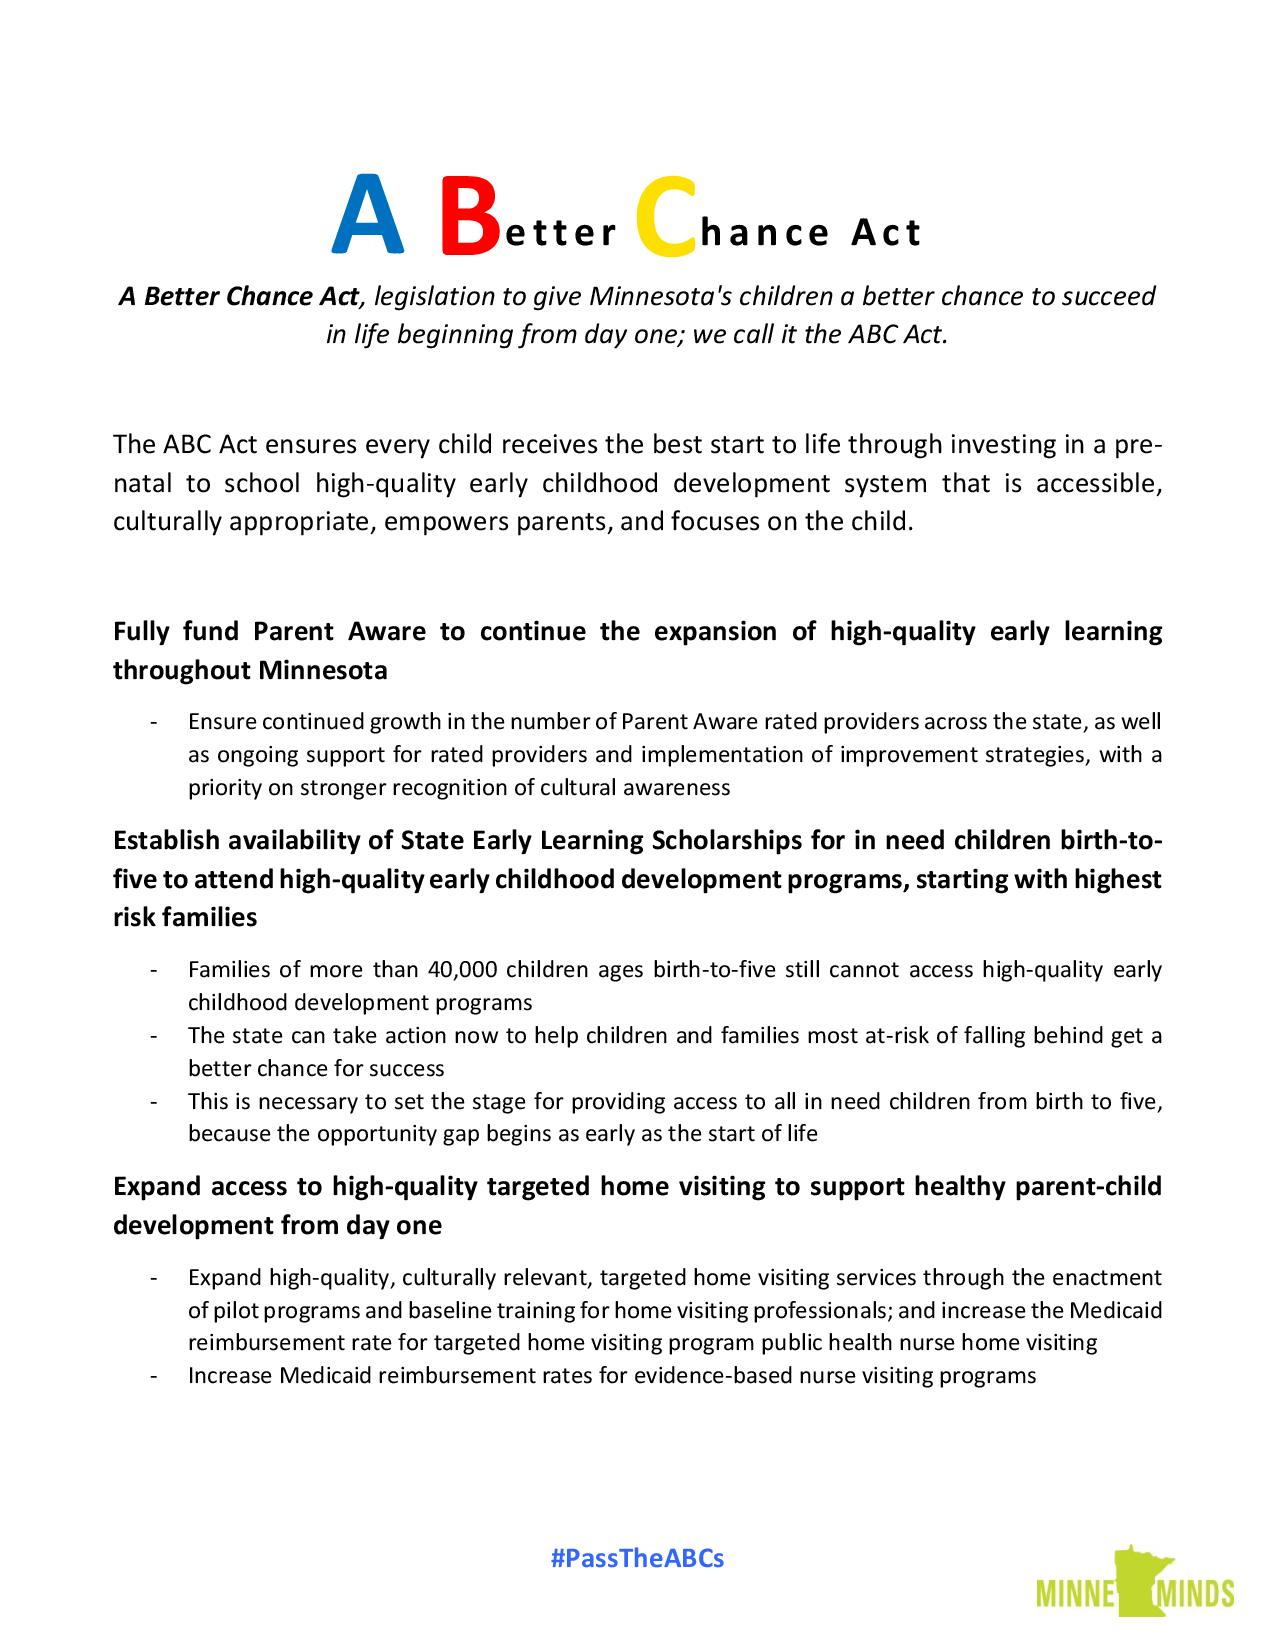 ABC-Act-Handout_2.29.16-page-001.jpg